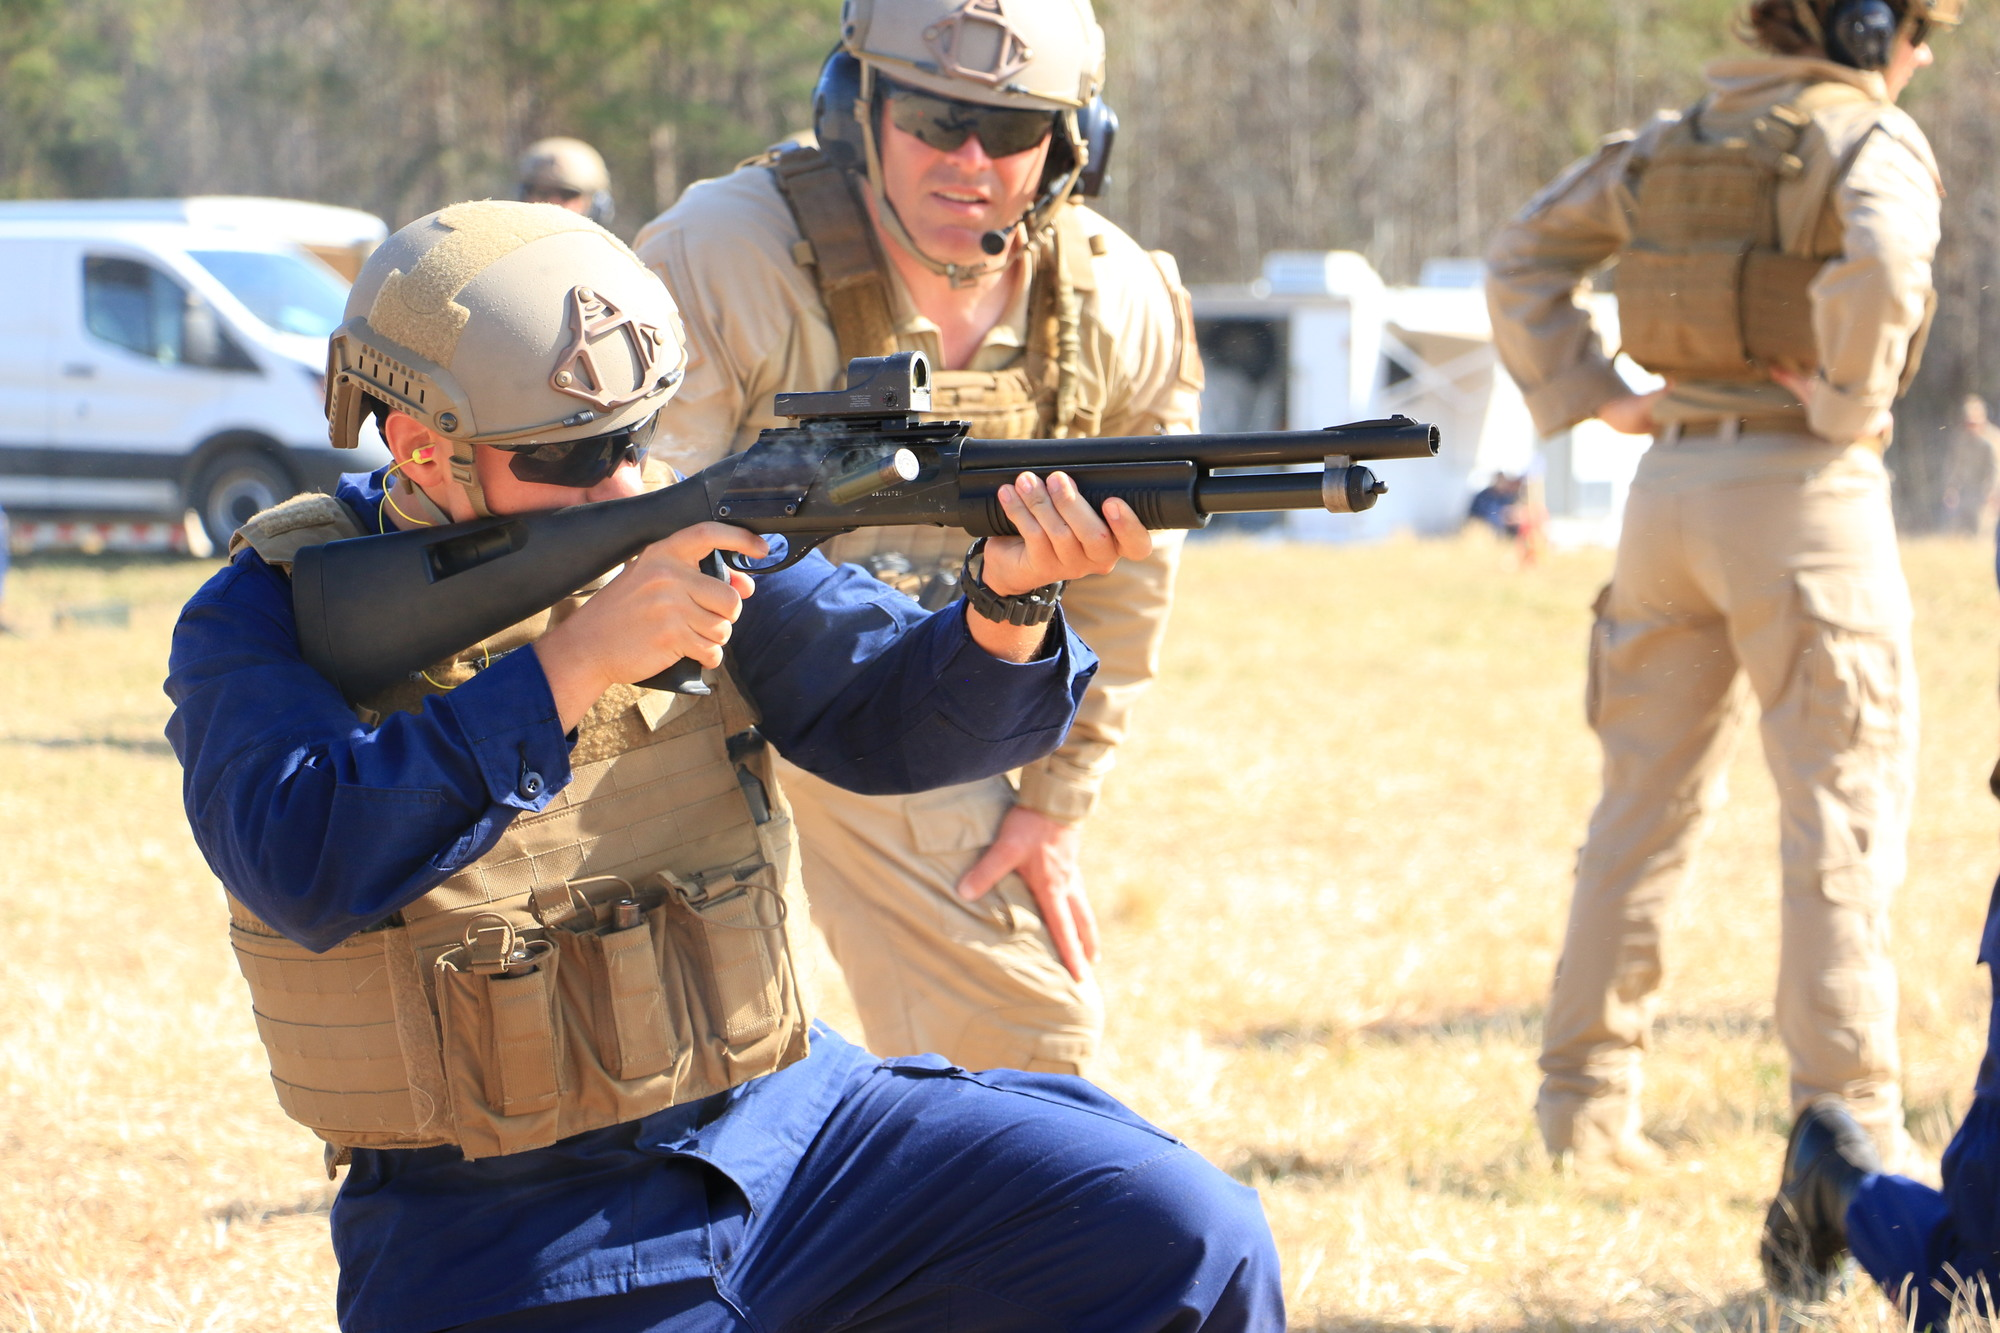 A Coast Guard special missions trainee fires the M870 Shotgun during a training exercise